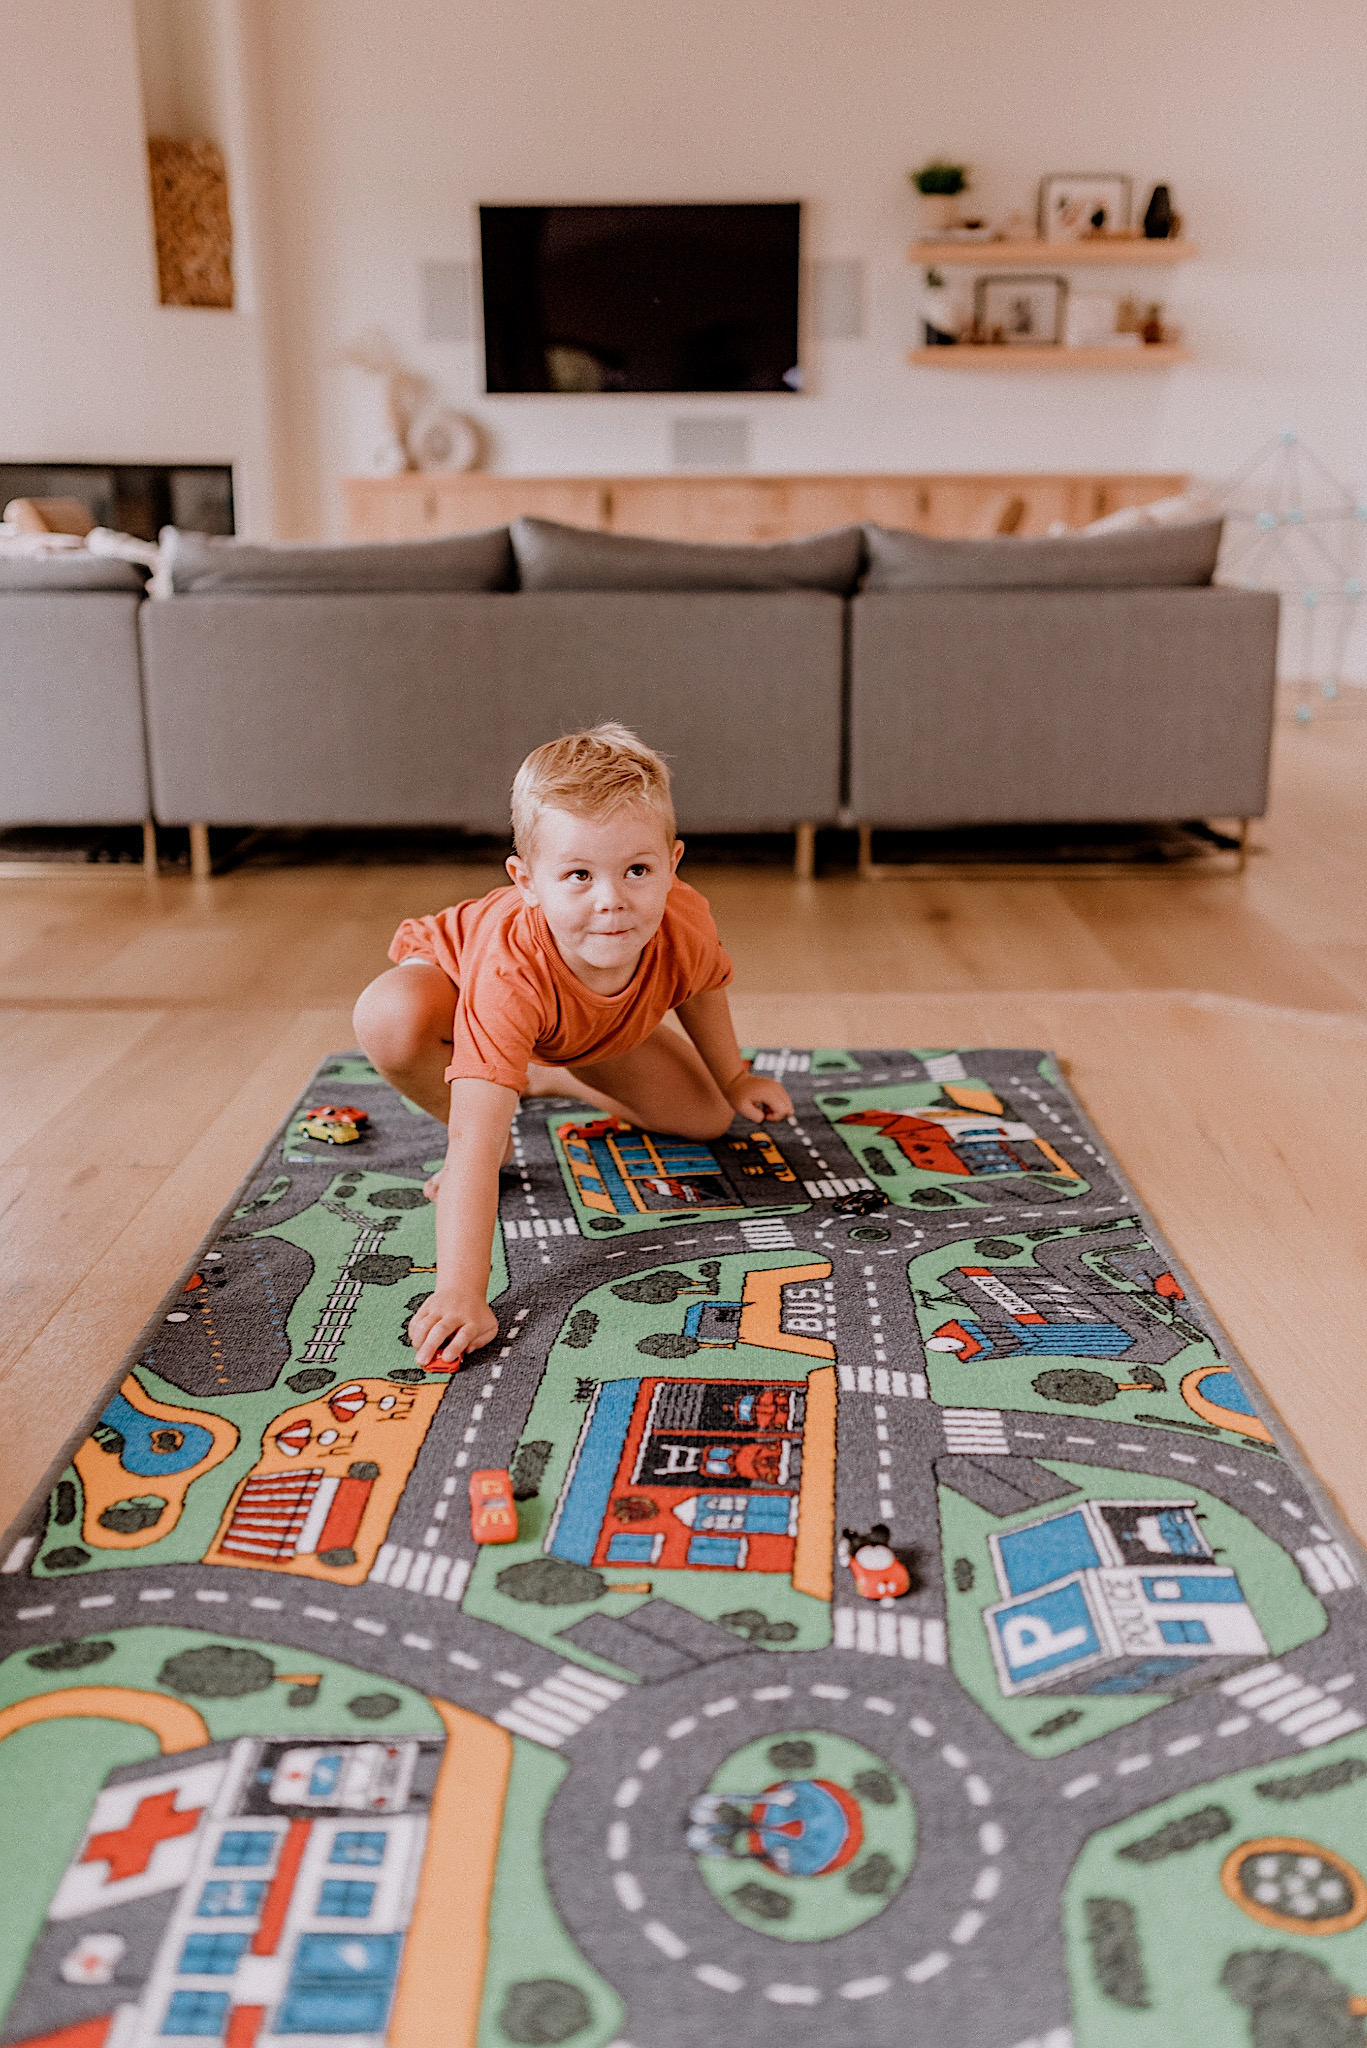 15 LEARNING ACTIVITIES FOR 3 TO 5 YEAR OLDS to try featured by top San Diego lifestyle blogger, Navy Grace |Learning Activities by popular San Diego motherhood blog, Navy Grace: image of a boy playing on a car mat.